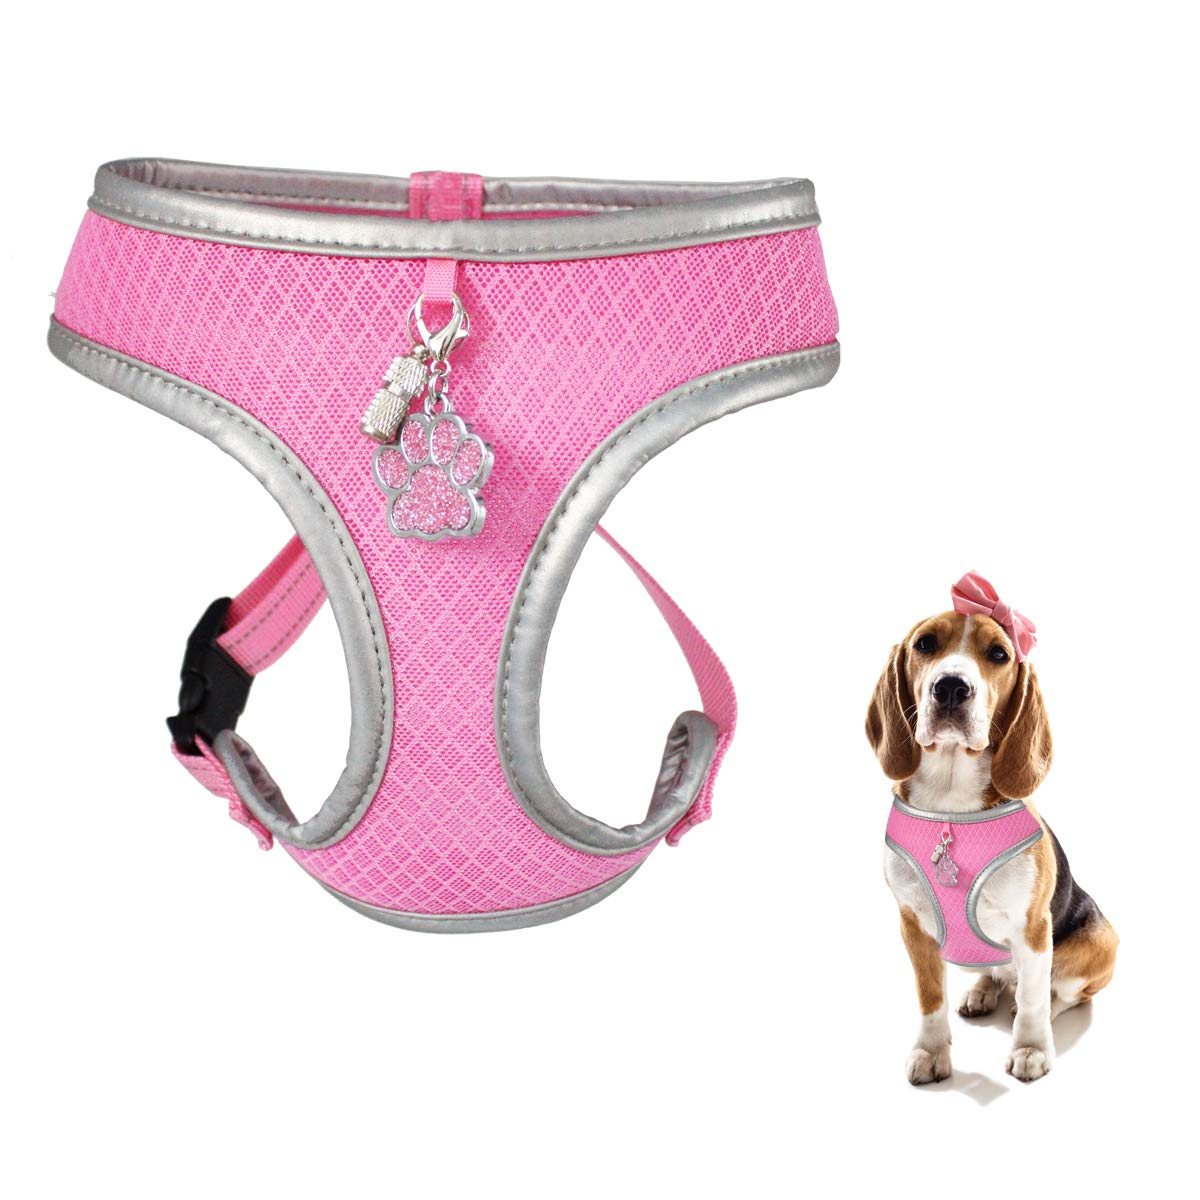 WONDERPUP Reflective Dog Cat Harness No Pull Soft Mesh Adjustable Safe Harness for Small and Medium (M, Pink)